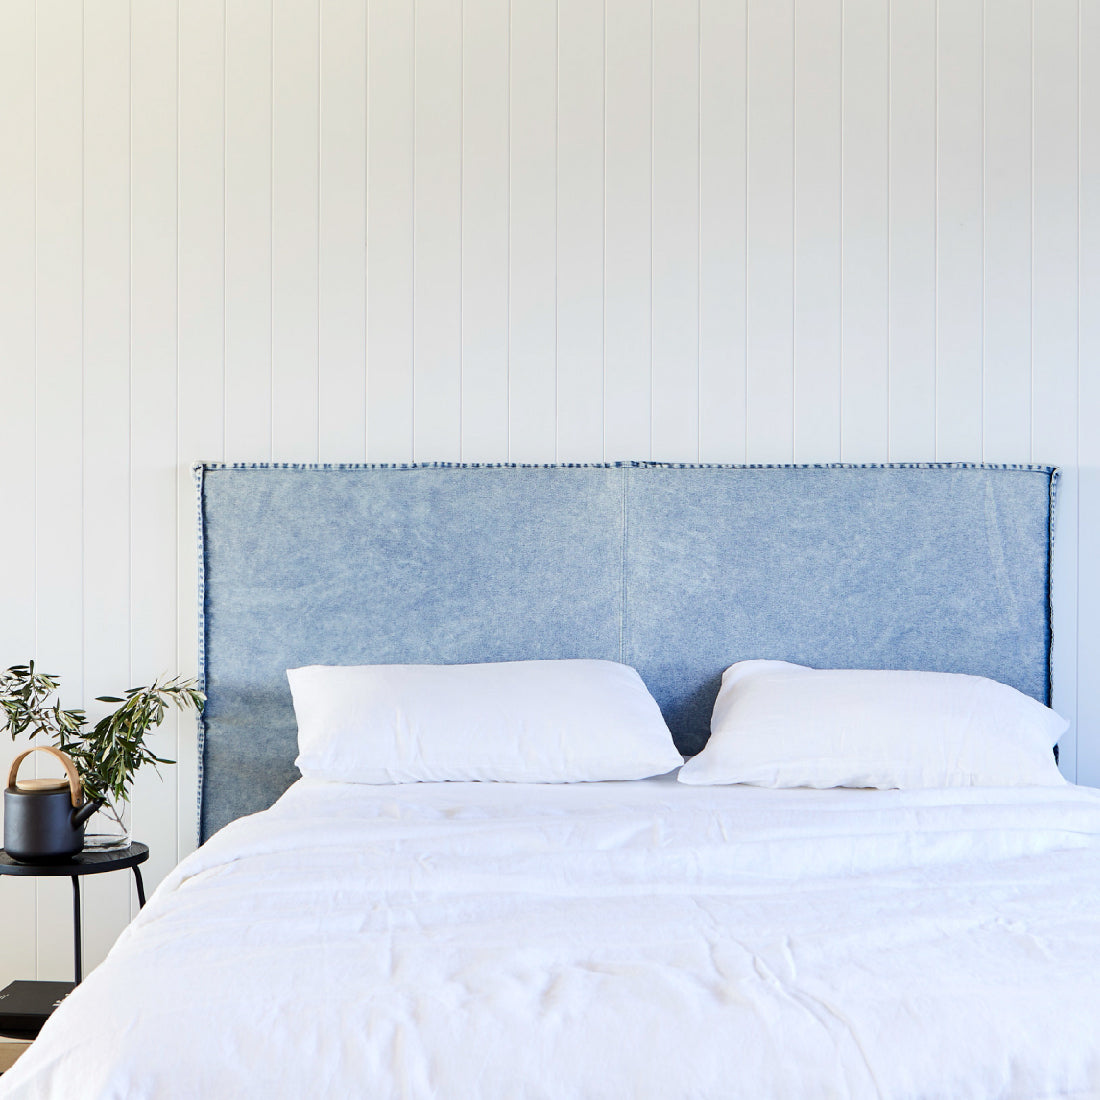 Old Faithful Bedhead with Denim Slipcover